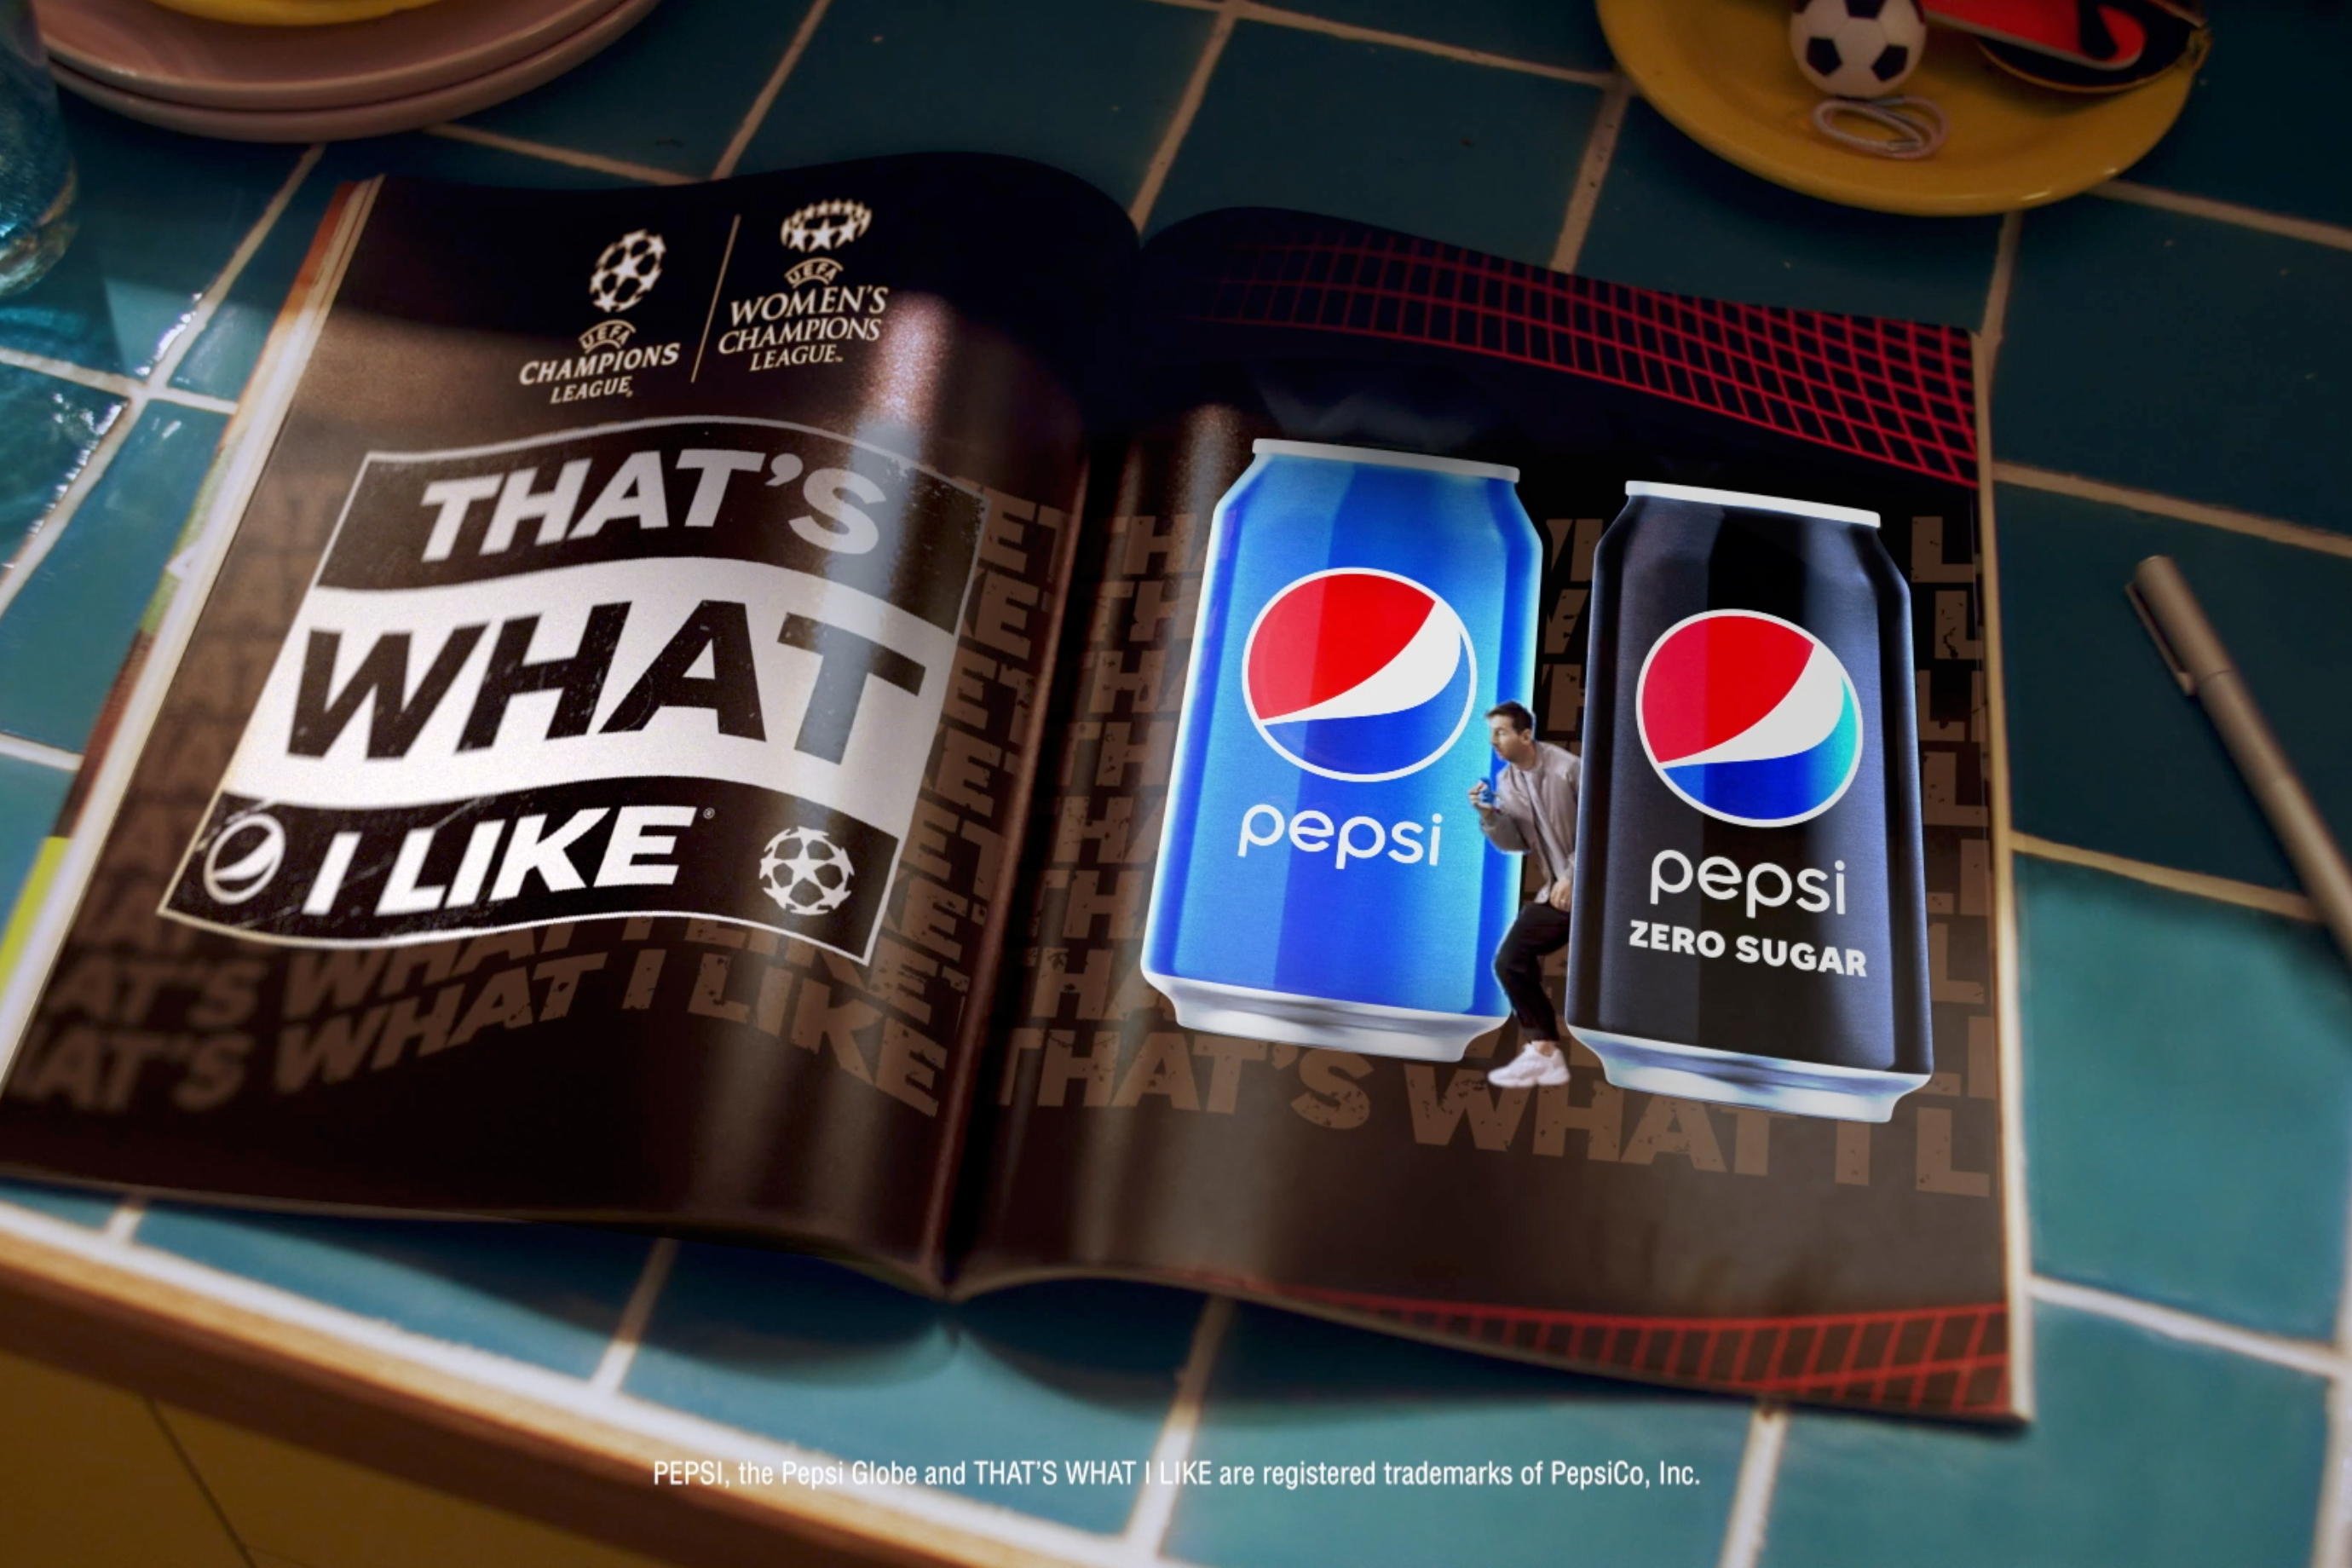 Pepsi new UEFA Champions League soccer campaign ad AMV BBDO Raine Allen Miller Leo Messi Paul Pogba Shanice van de Sanden commercial TV Rotate Becky G Burna Boy Pepsi song